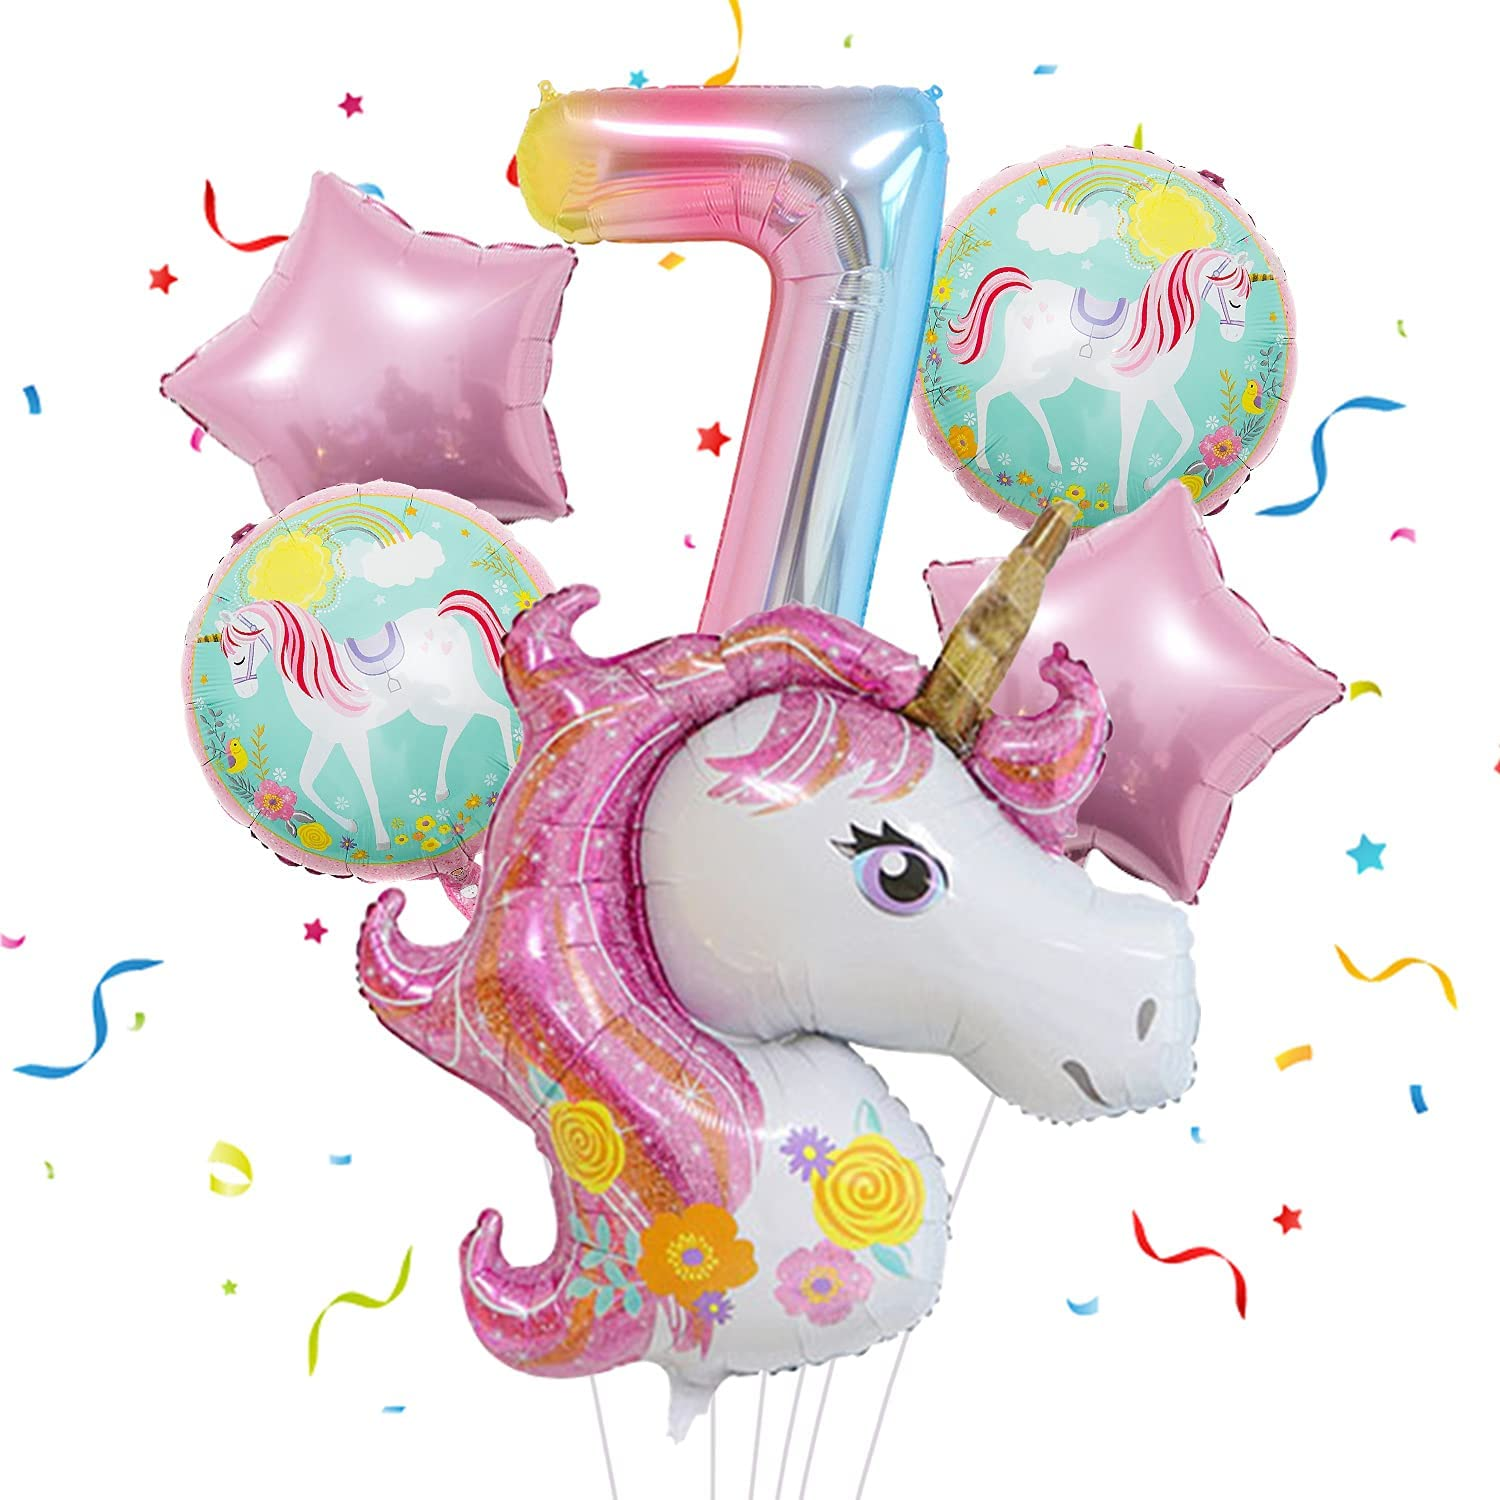 Jumbo Unicorn Balloons Party Supplies for Girls Birthday Decoration, Mylar Foil Balloon Bouquet for 7th Birthday Party Baby Shower Home Office Backdrop Decor